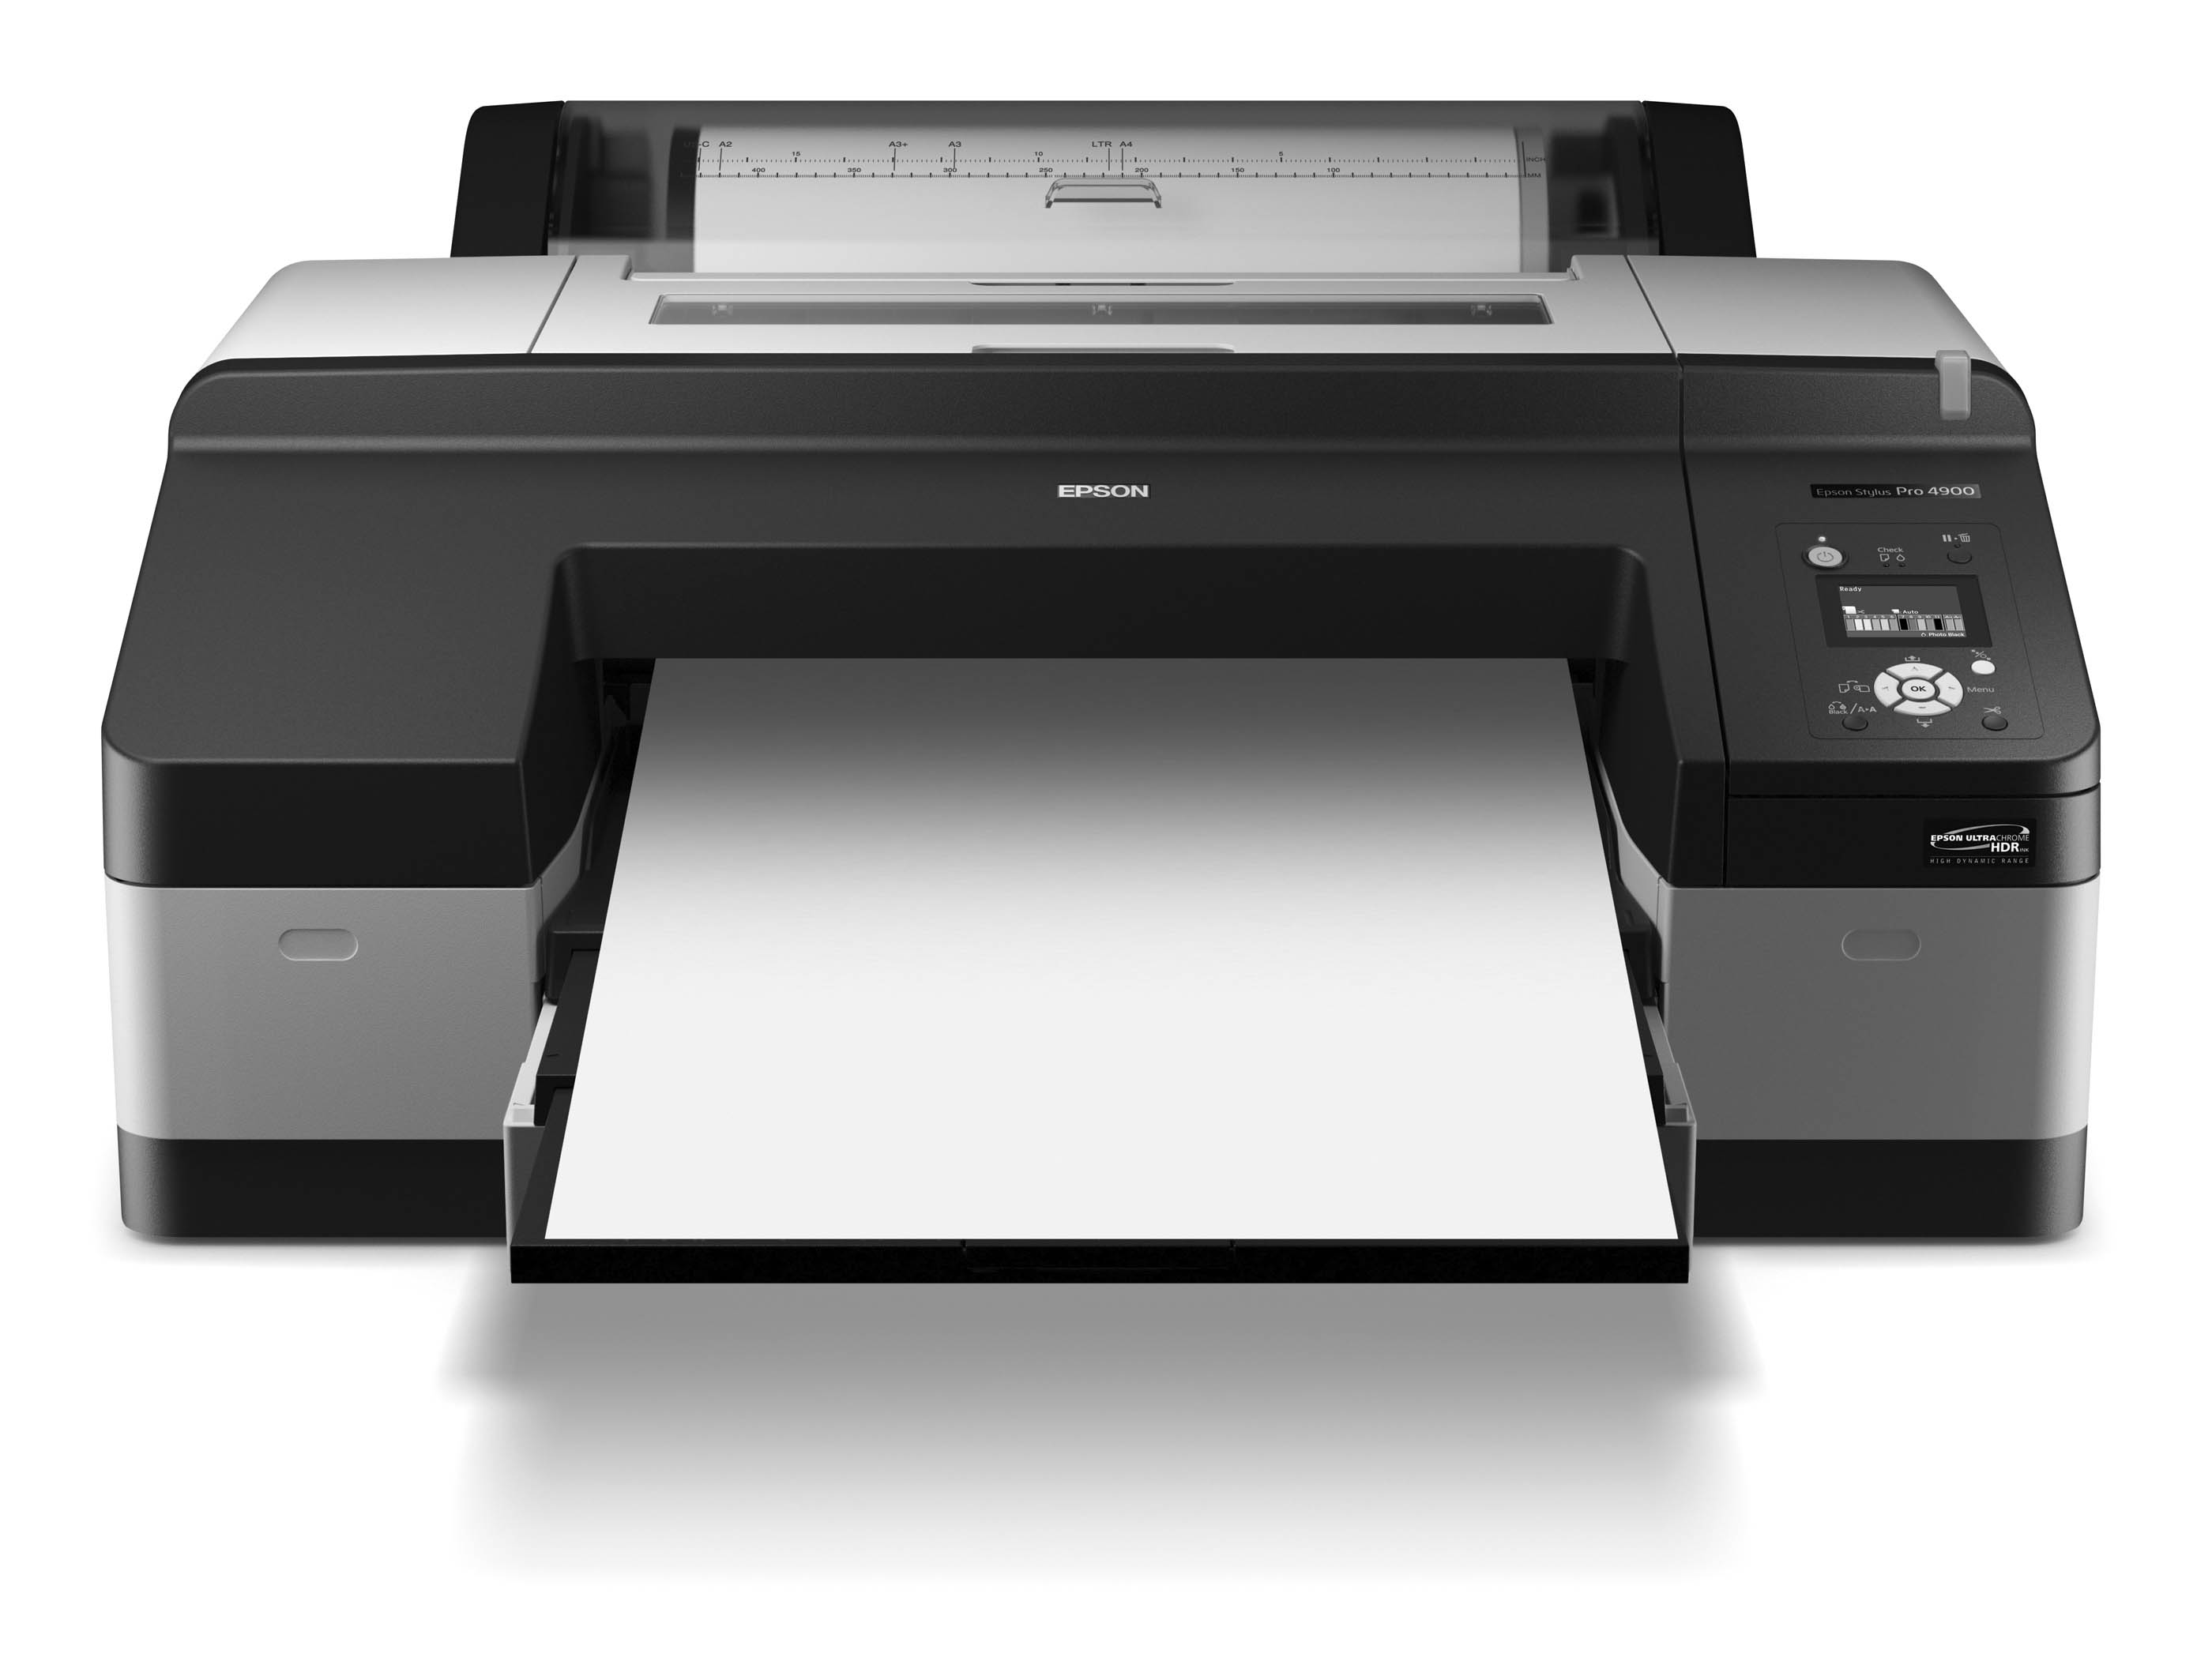 How to Initial Fill Your Printer